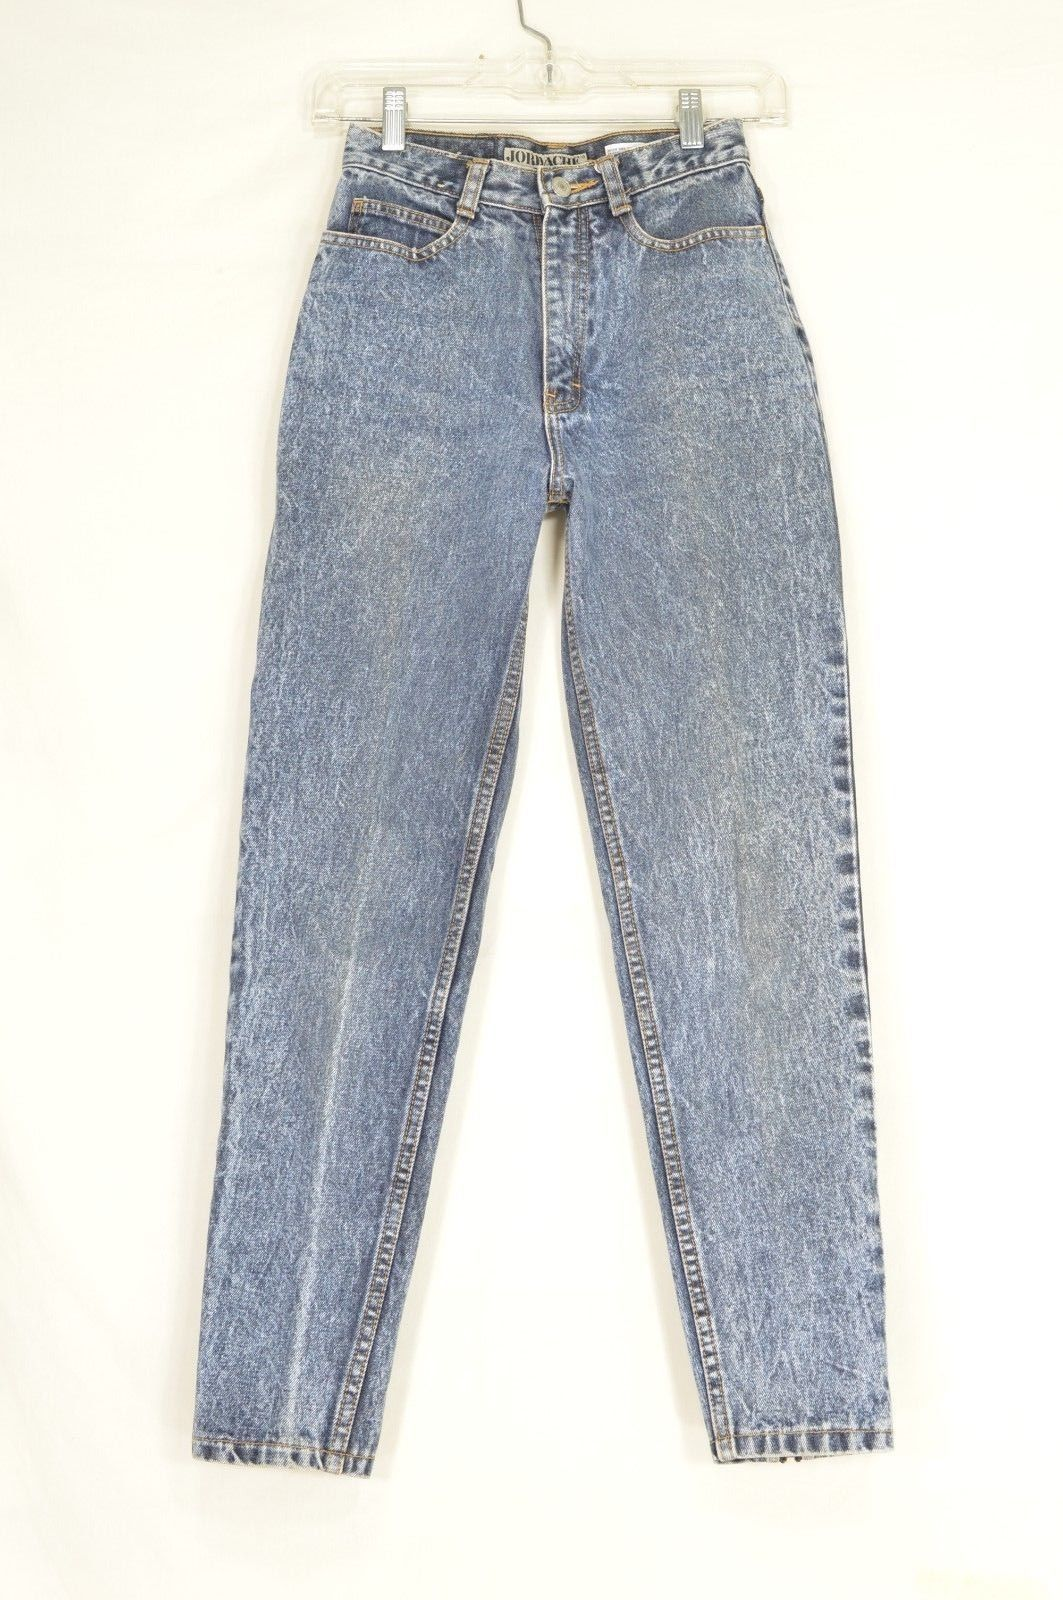 1 Jordache jeans 5/6 x 27 high waist mom vintage tapered zipper legs